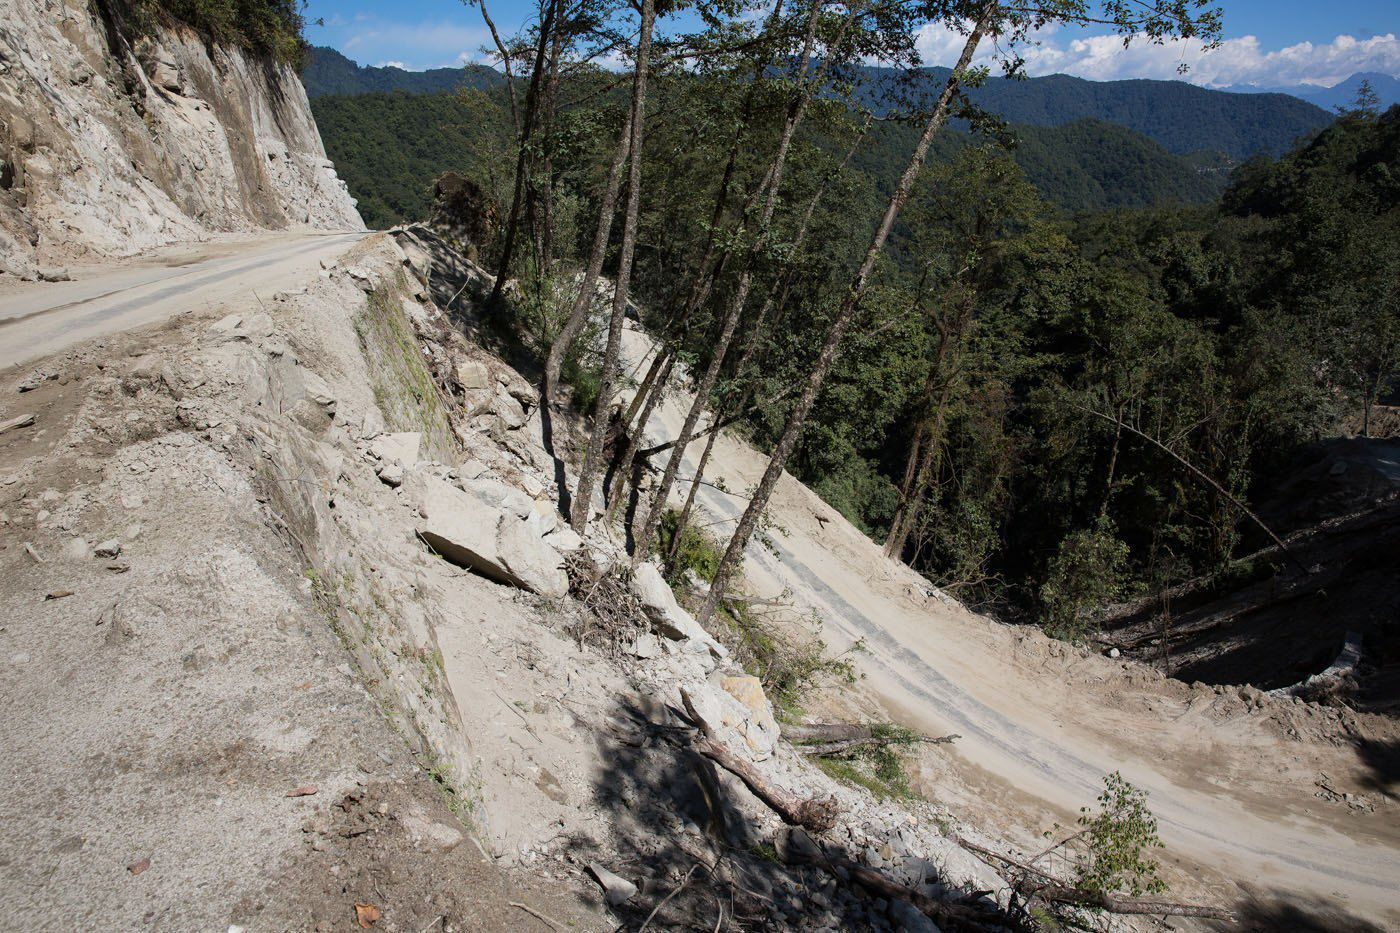 Bhutan Road Construction